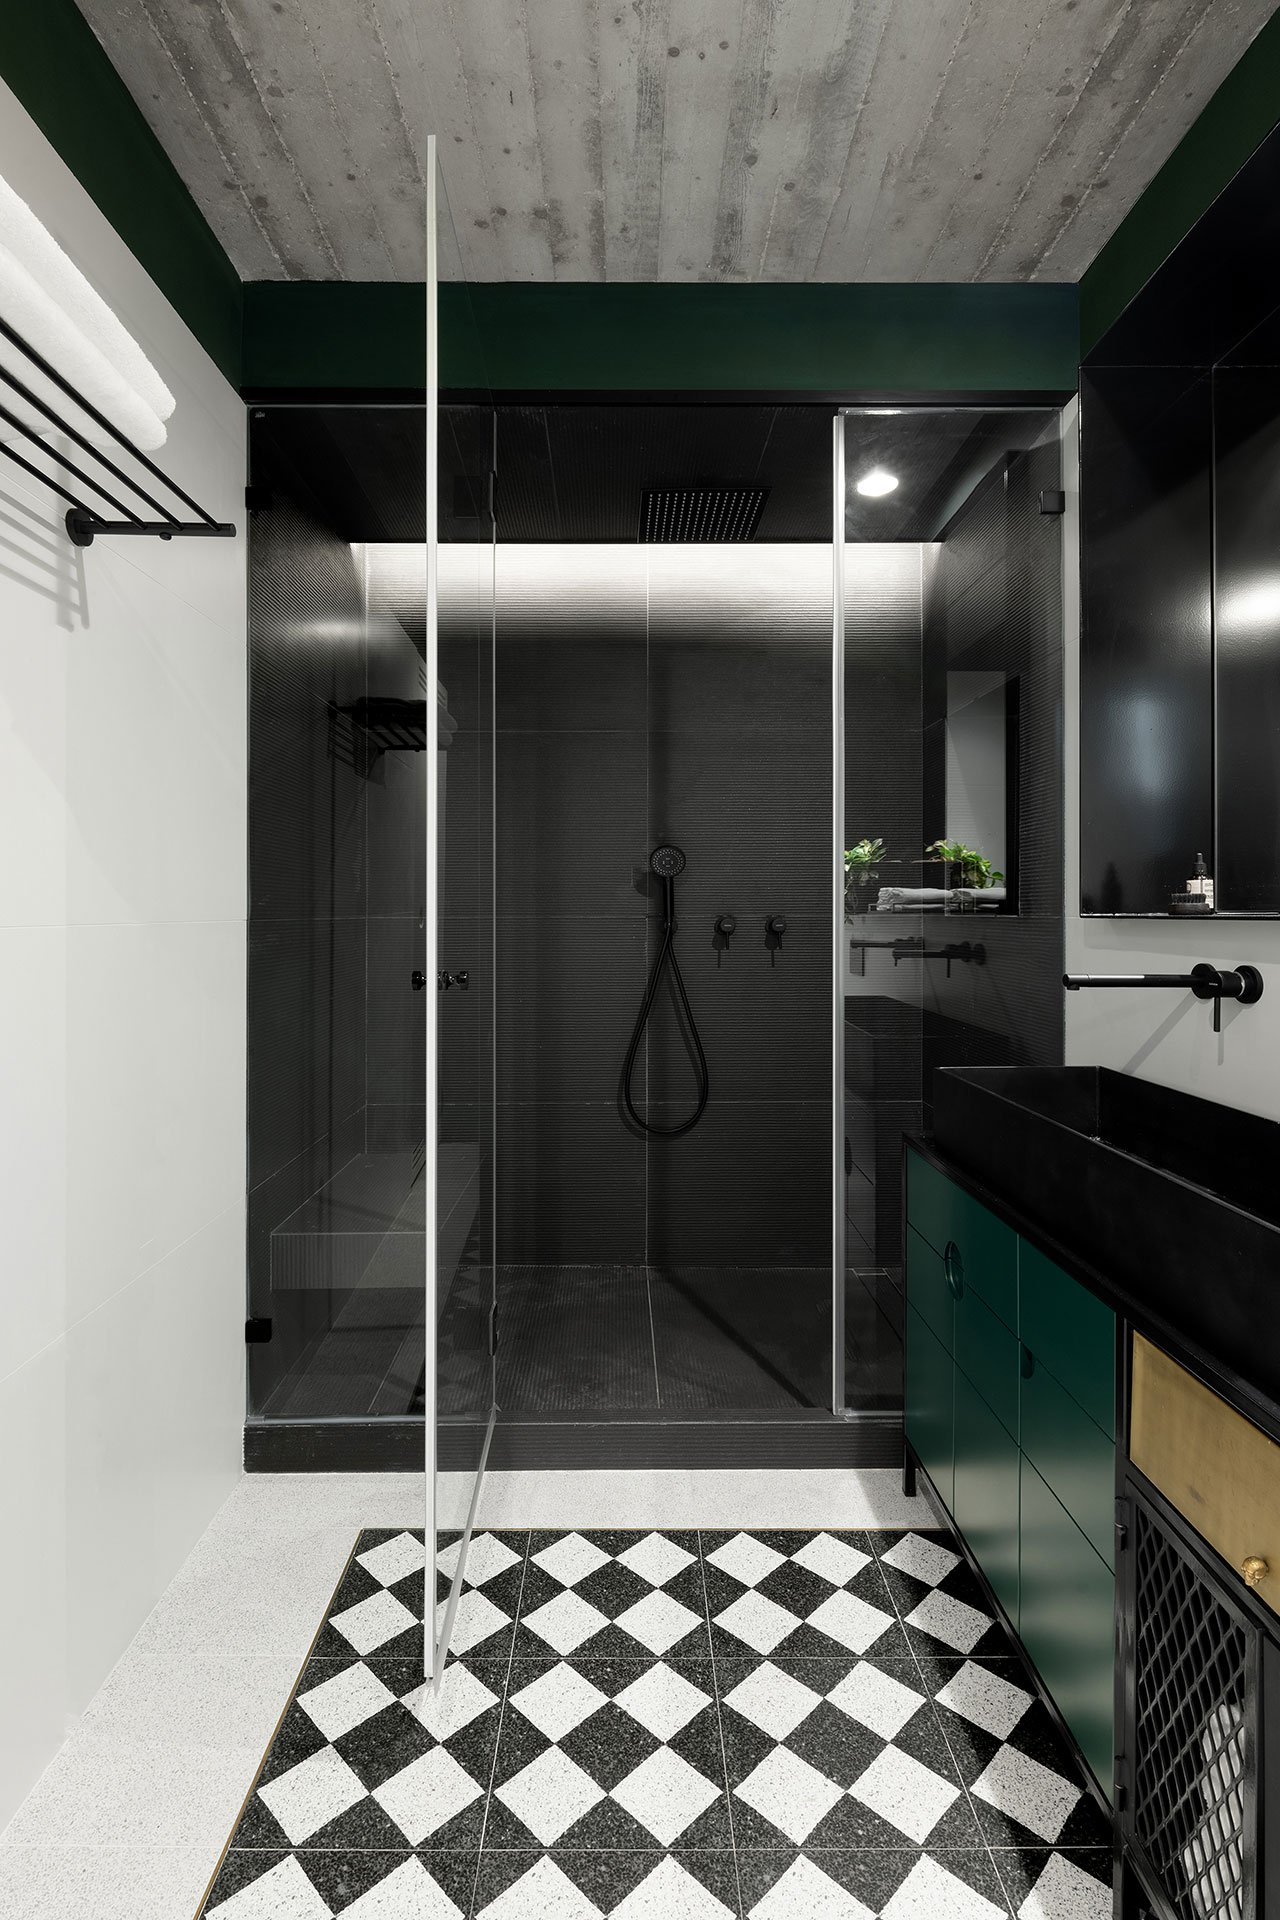 The bathroom is done in black, white and emerald, with geometric patterns to tie the spaces